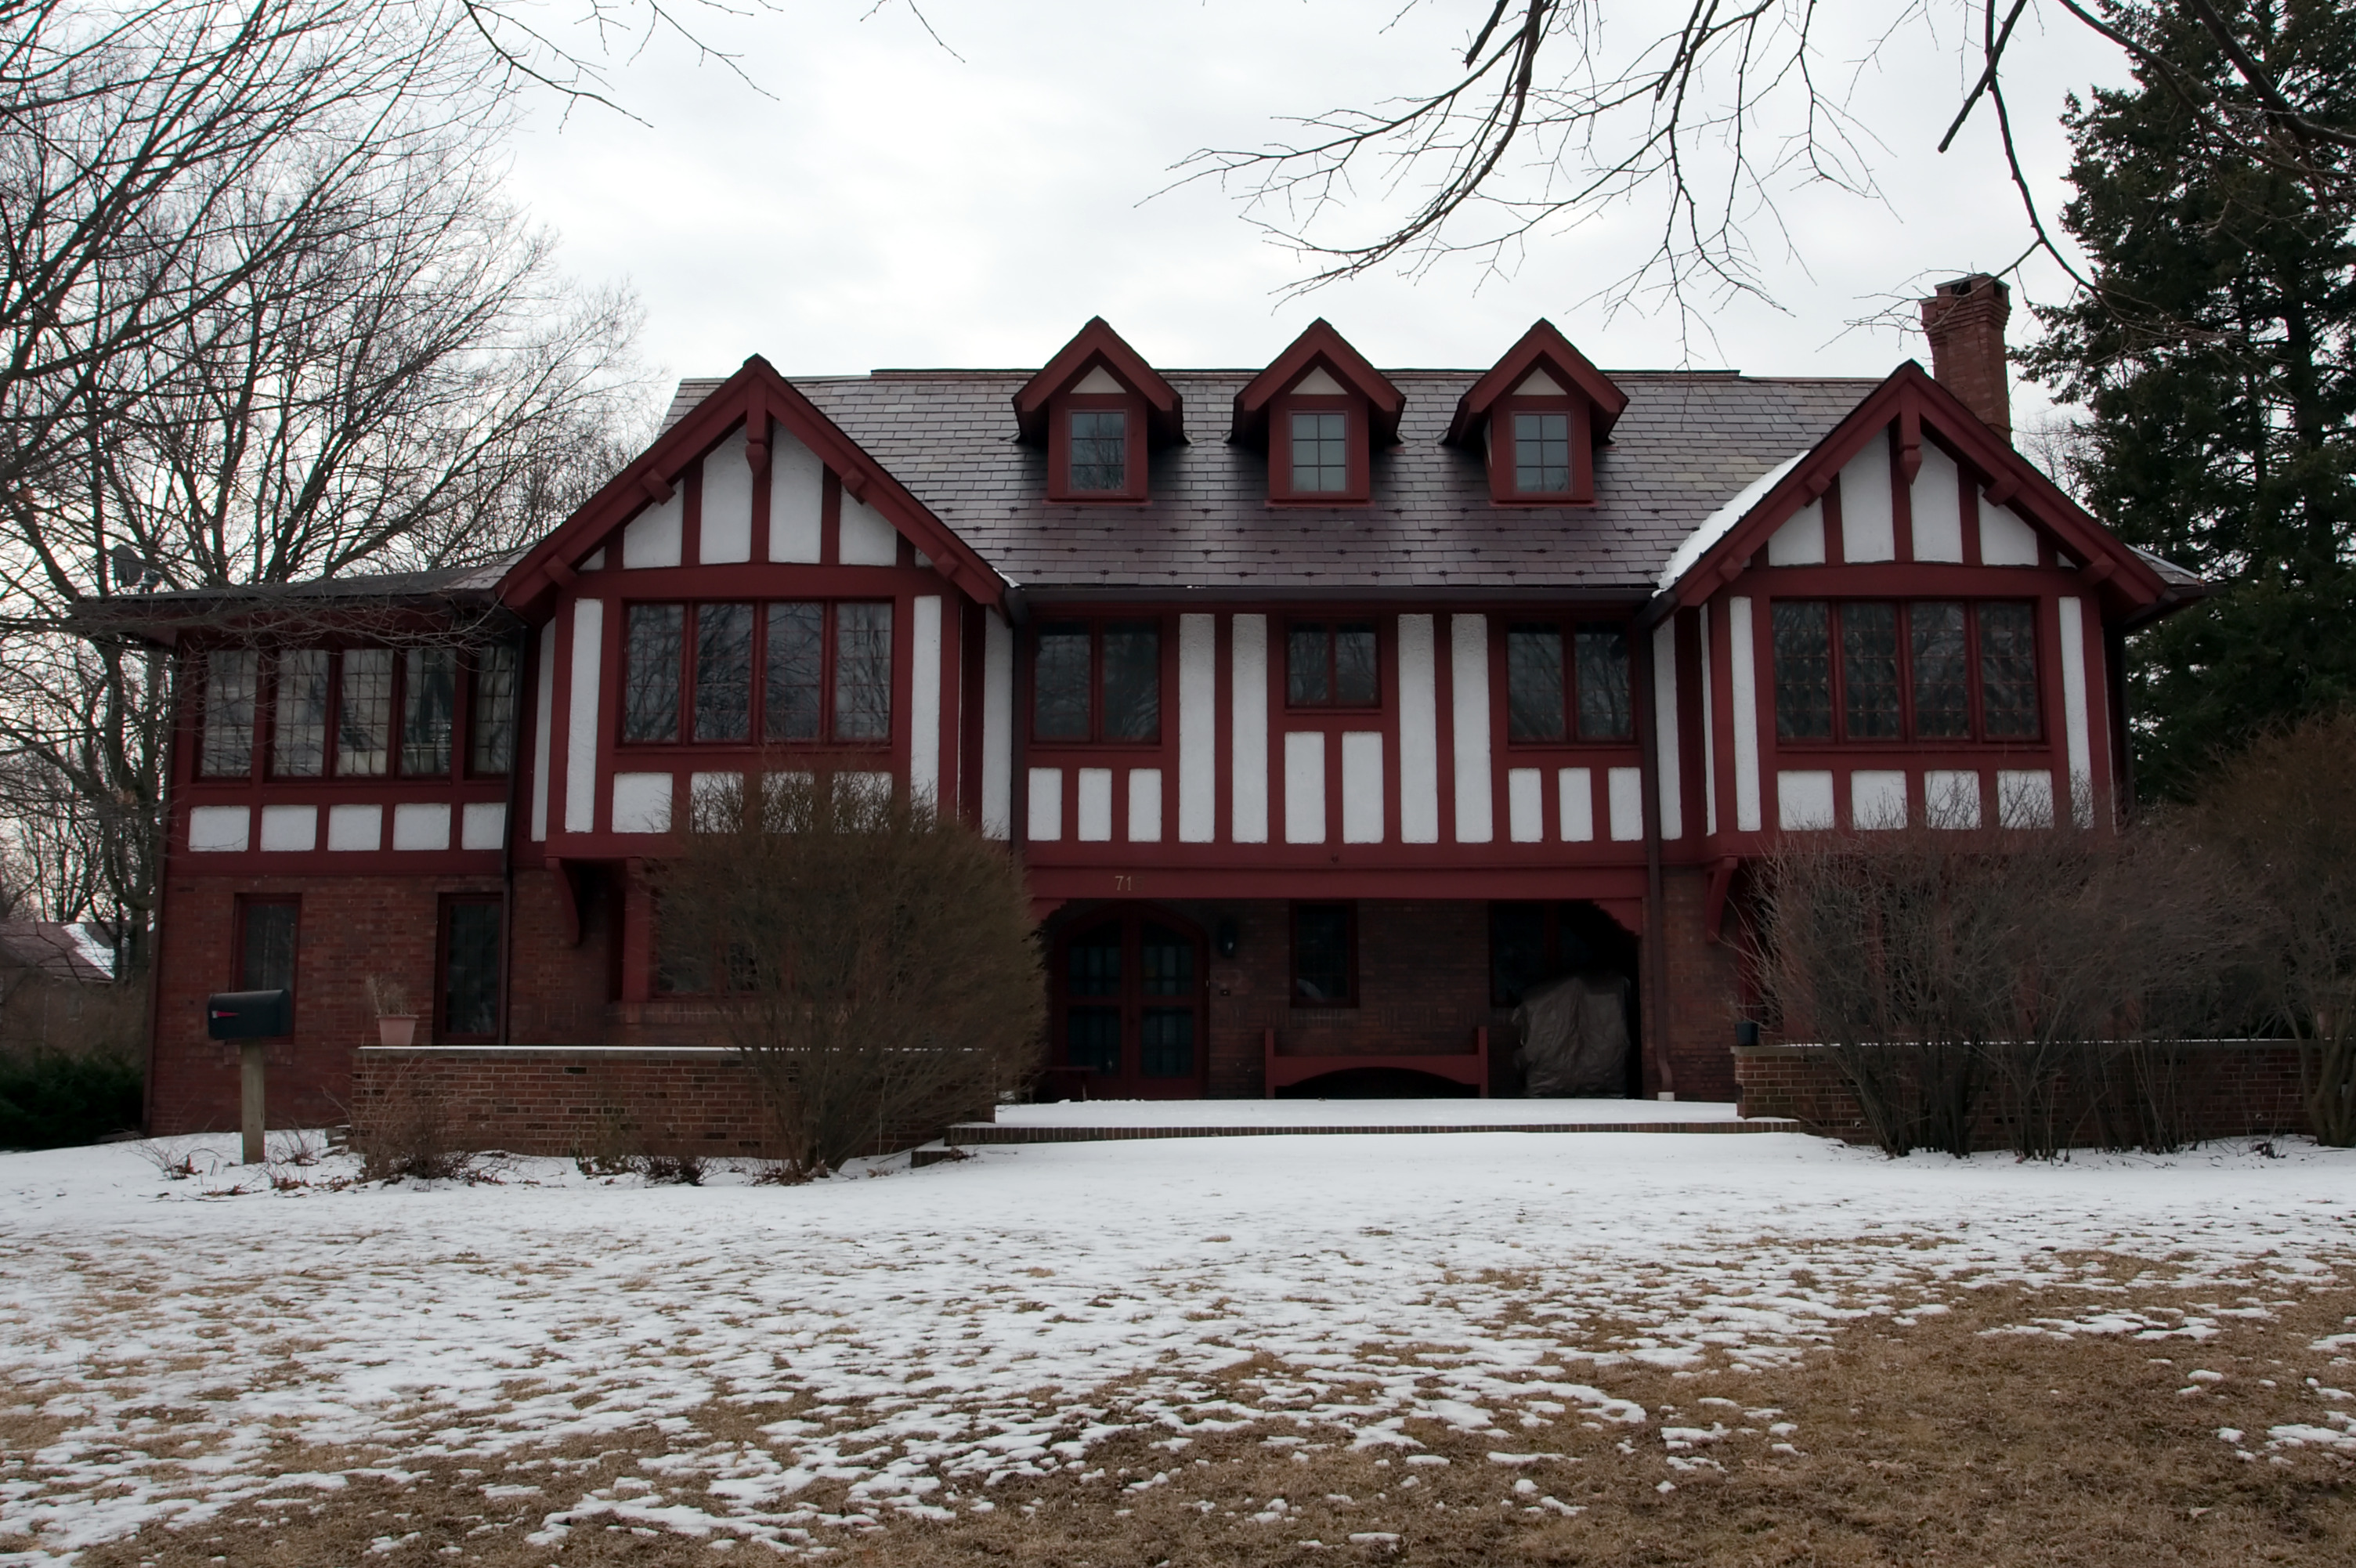 The home was originally constructed for the family of local banker Matthew Busey in 1914.